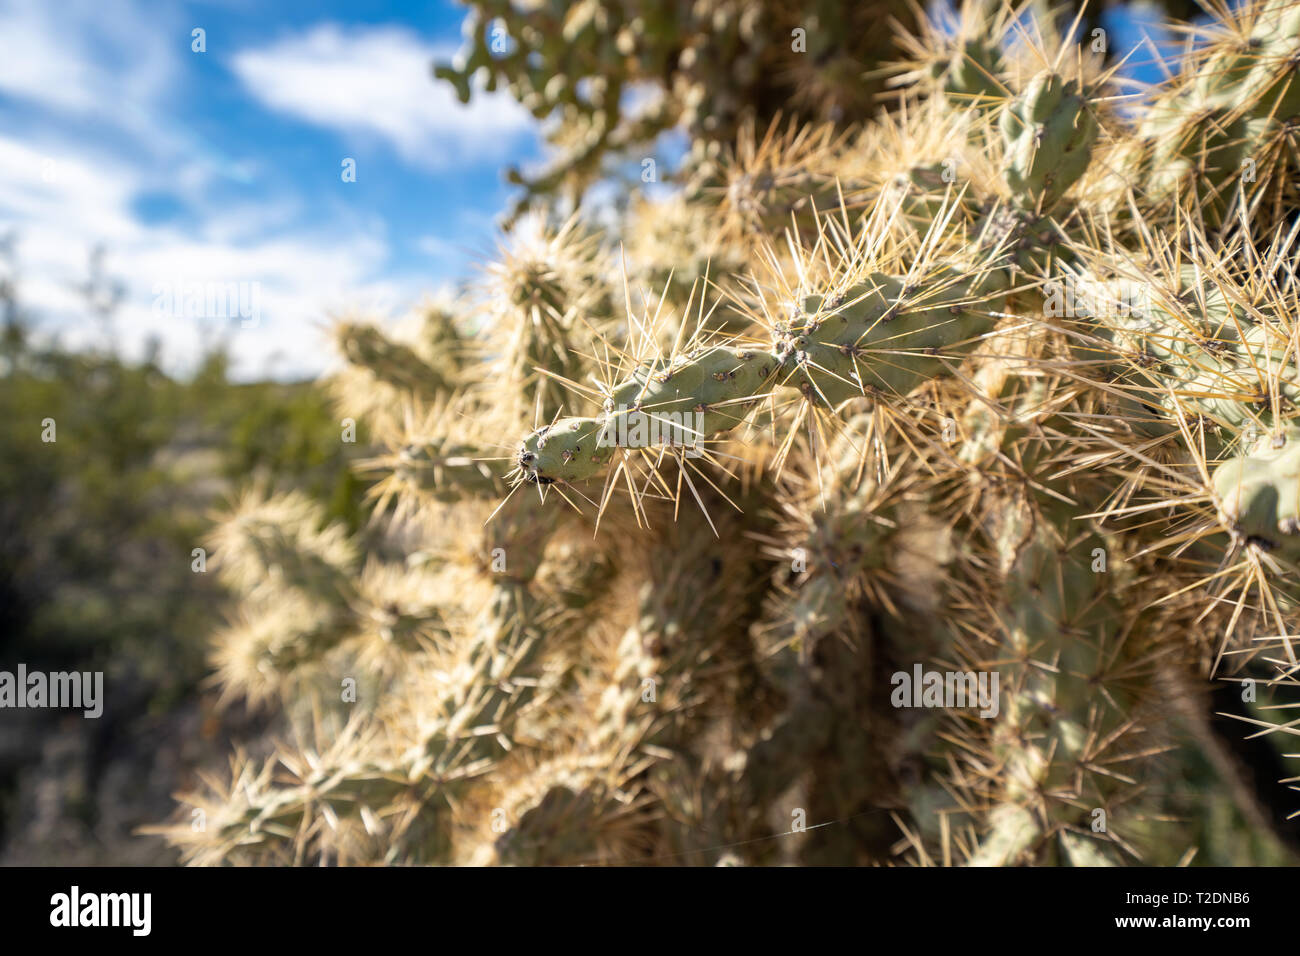 Close up of a chain fruit cholla cactus in the Sonoran Desert of Arizona - Stock Image